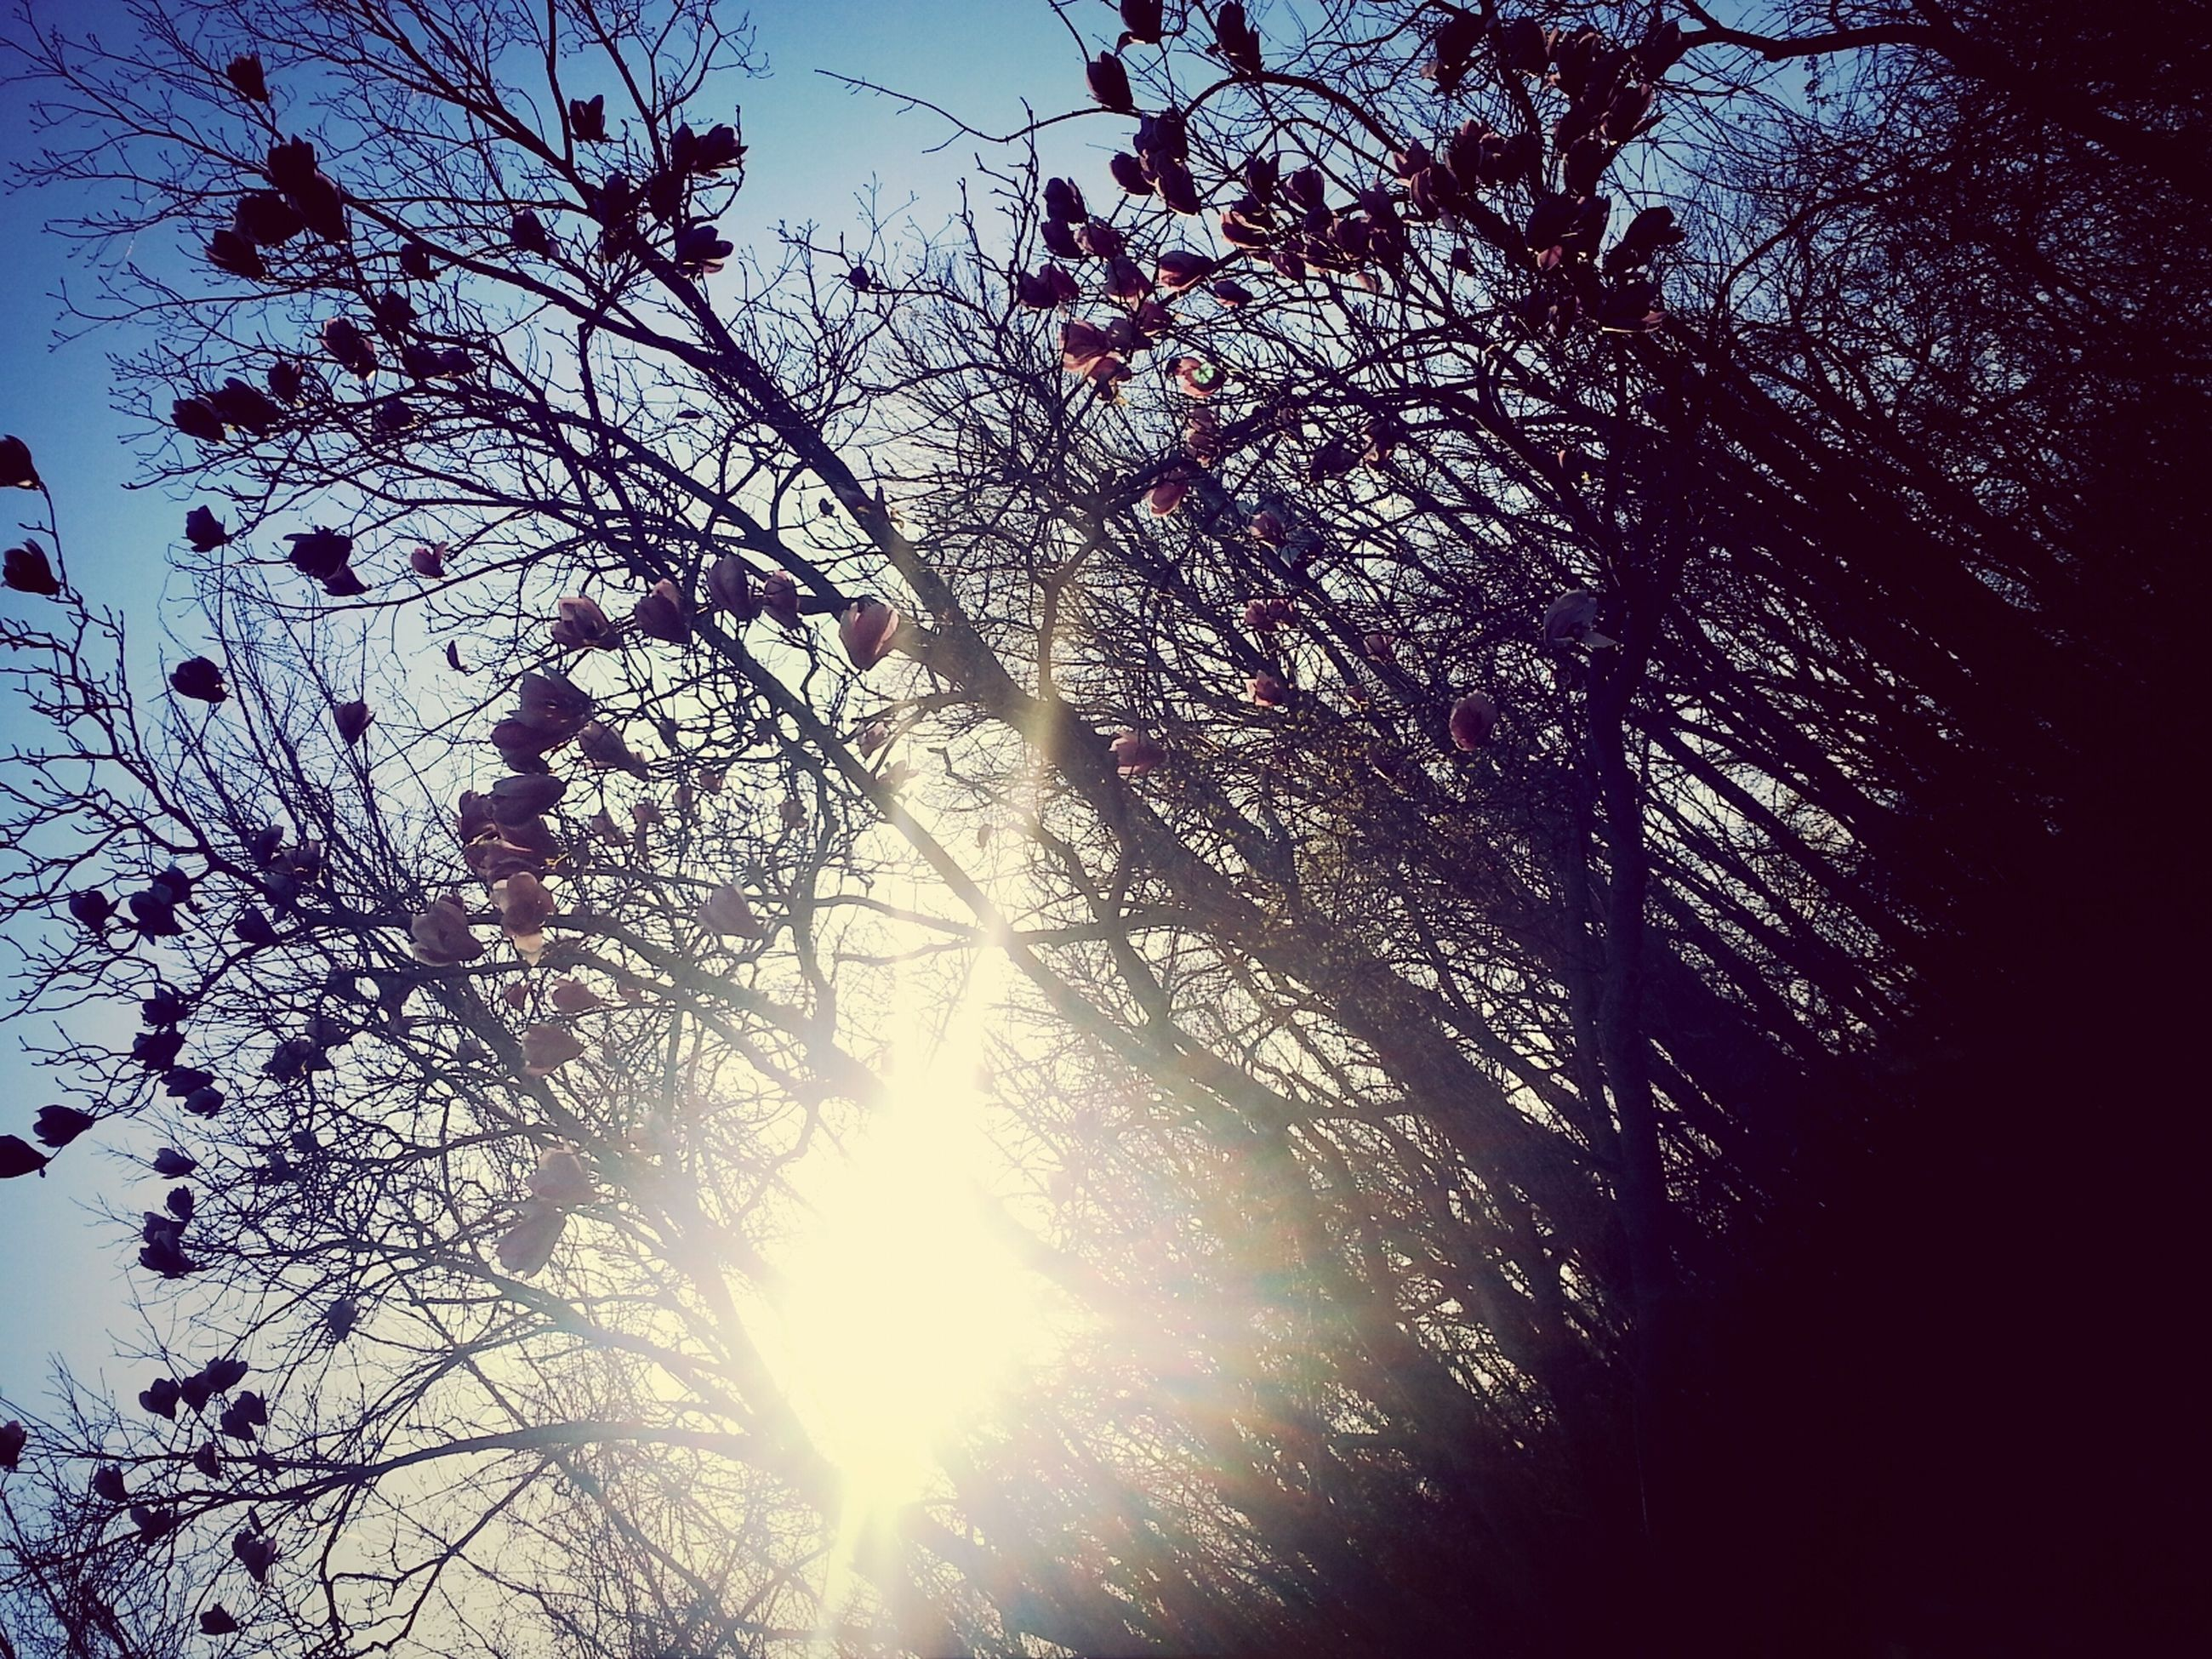 tree, low angle view, branch, silhouette, sky, bare tree, nature, growth, sun, tranquility, beauty in nature, sunlight, sunset, scenics, outdoors, no people, dusk, sunbeam, tranquil scene, clear sky